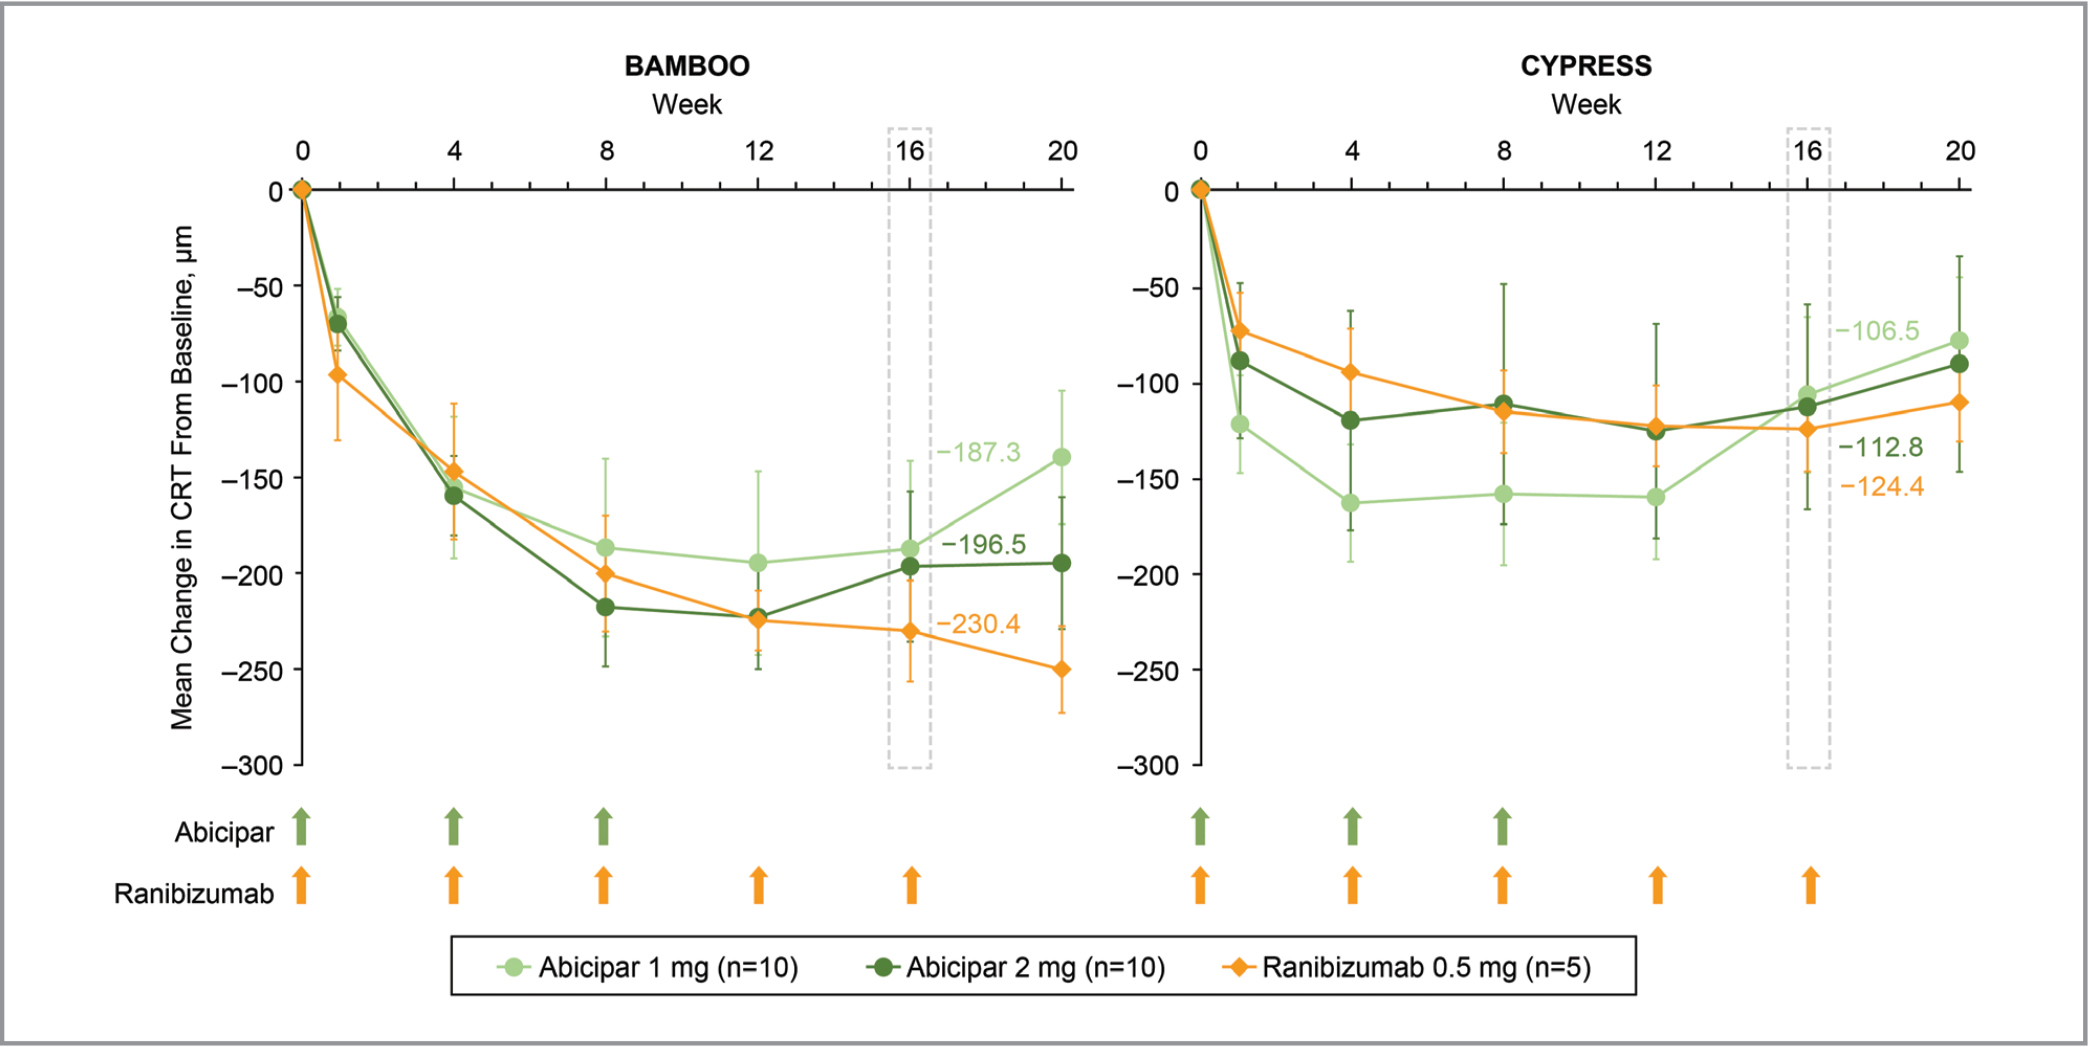 Mean change from baseline in central retinal thickness (CRT) at each visit in the BAMBOO and CYPRESS studies. Green and orange arrows indicate treatment with abicipar and ranibizumab, respectively. Missing data were imputed with the last observation carried forward. Errors bars indicate standard error of the mean.